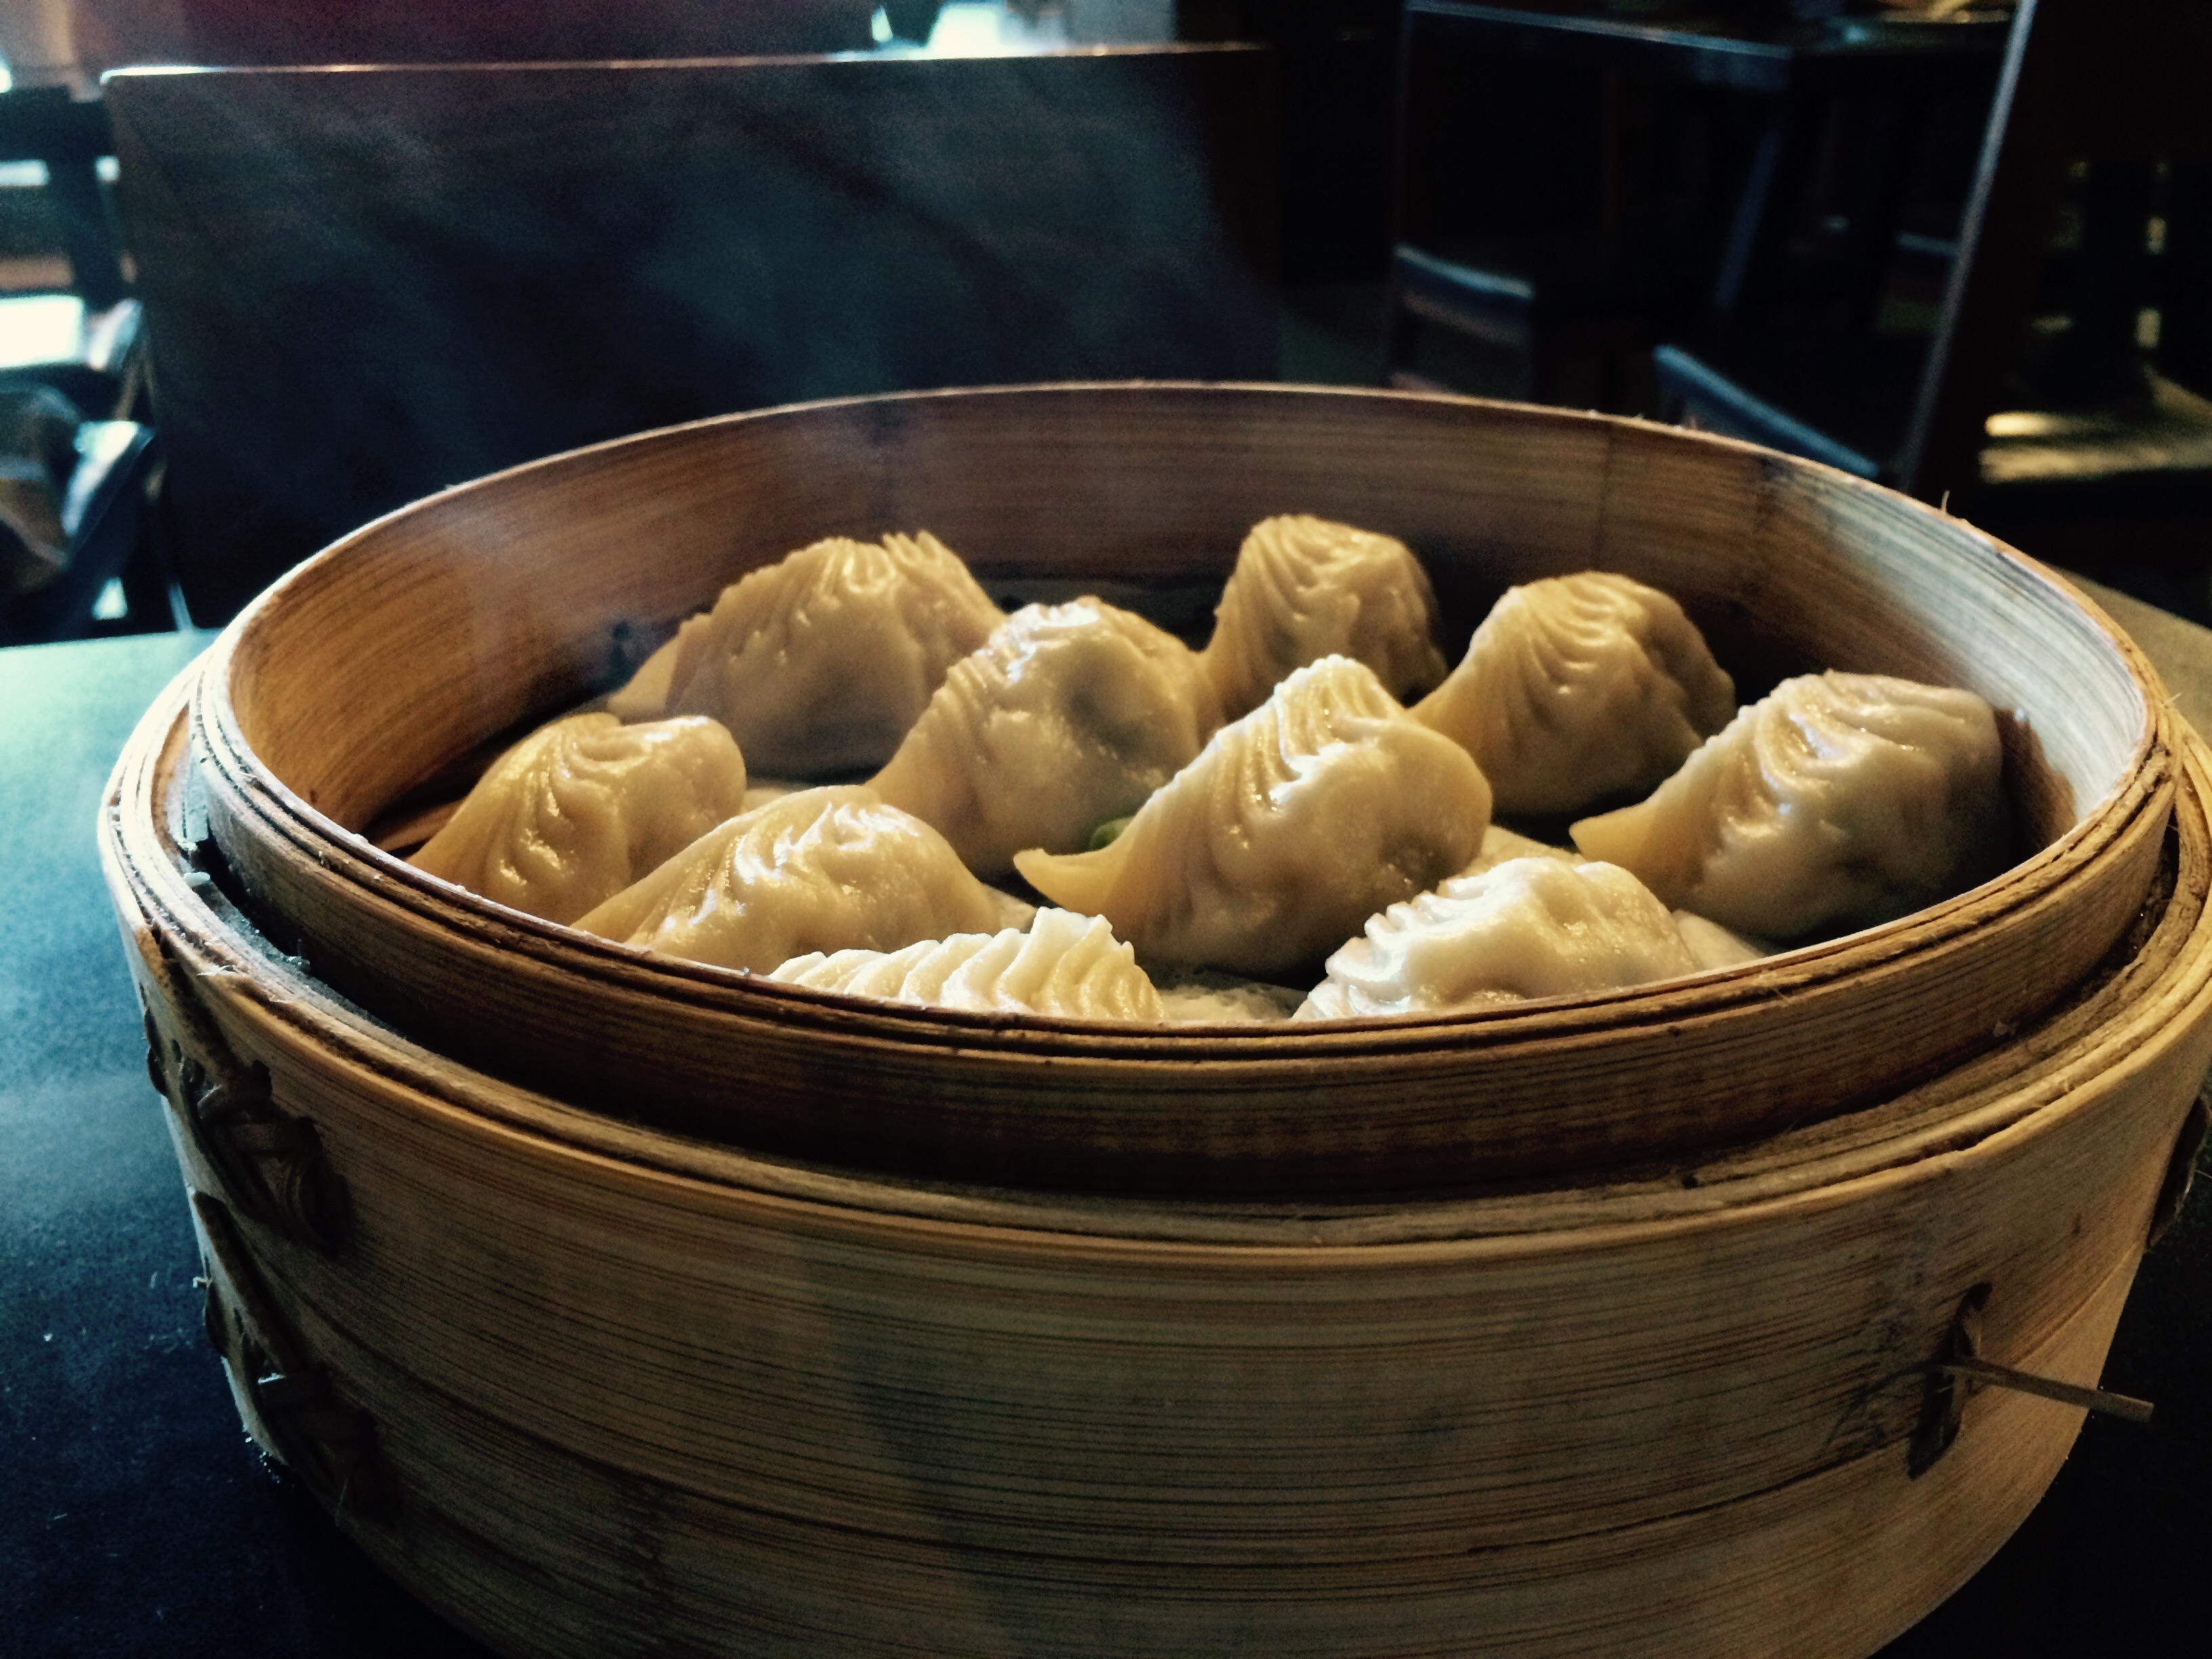 Dumplings at Din Tai Fung in Seattle